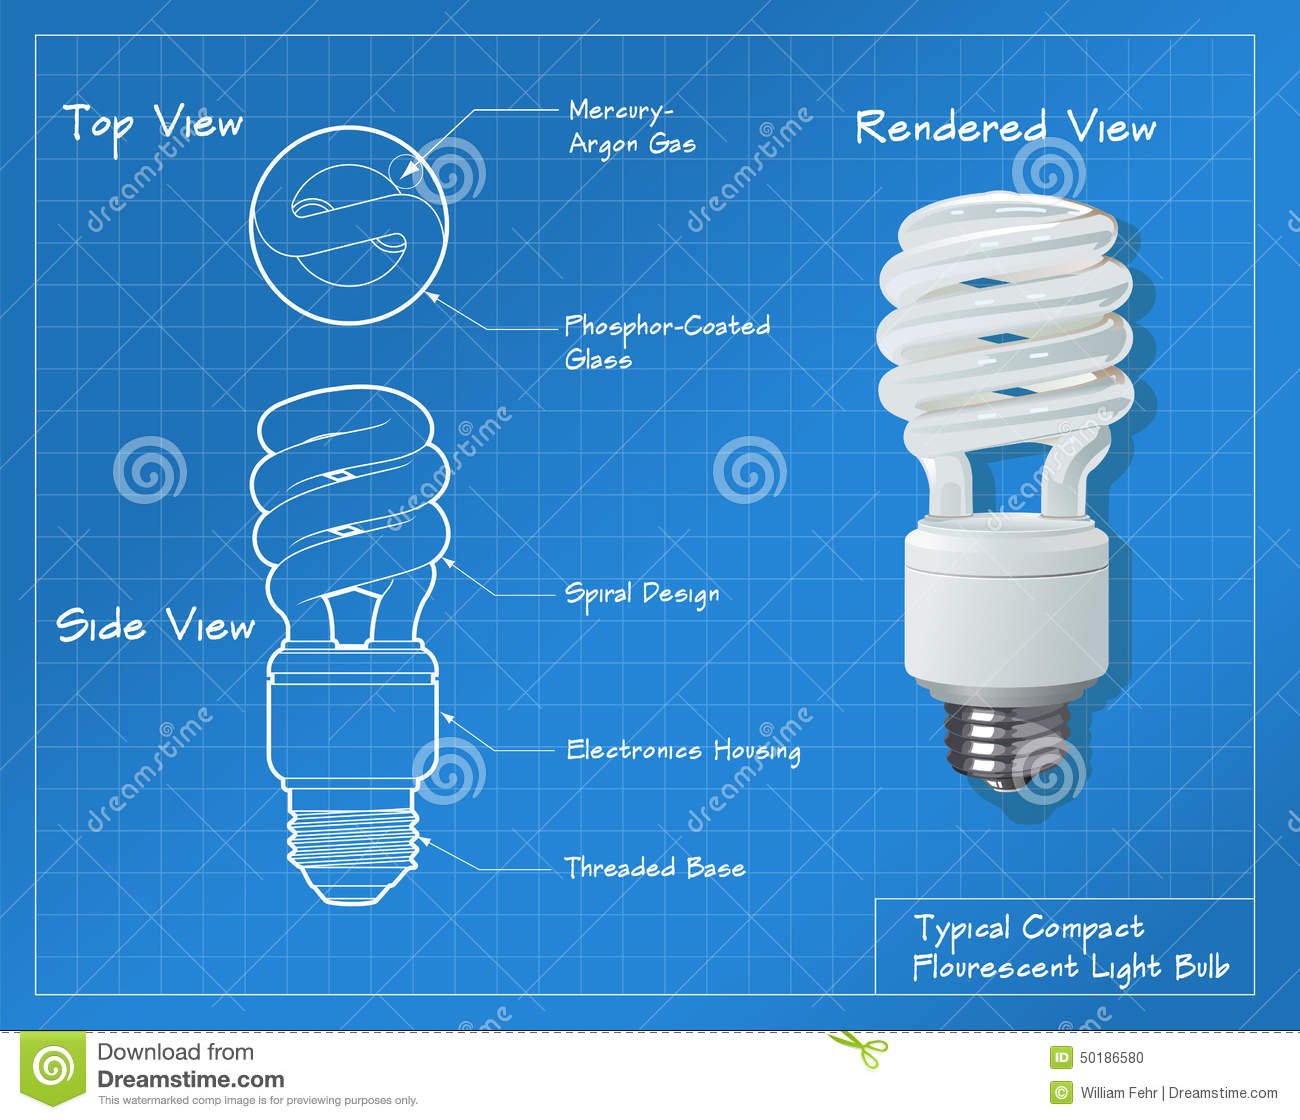 Fluorescent Light Bulb Diagram Drawing Trusted Schematics Compactfluorescentlightbulbsdiagram Compact Flourescent Stock Vector Illustration Of Wiring